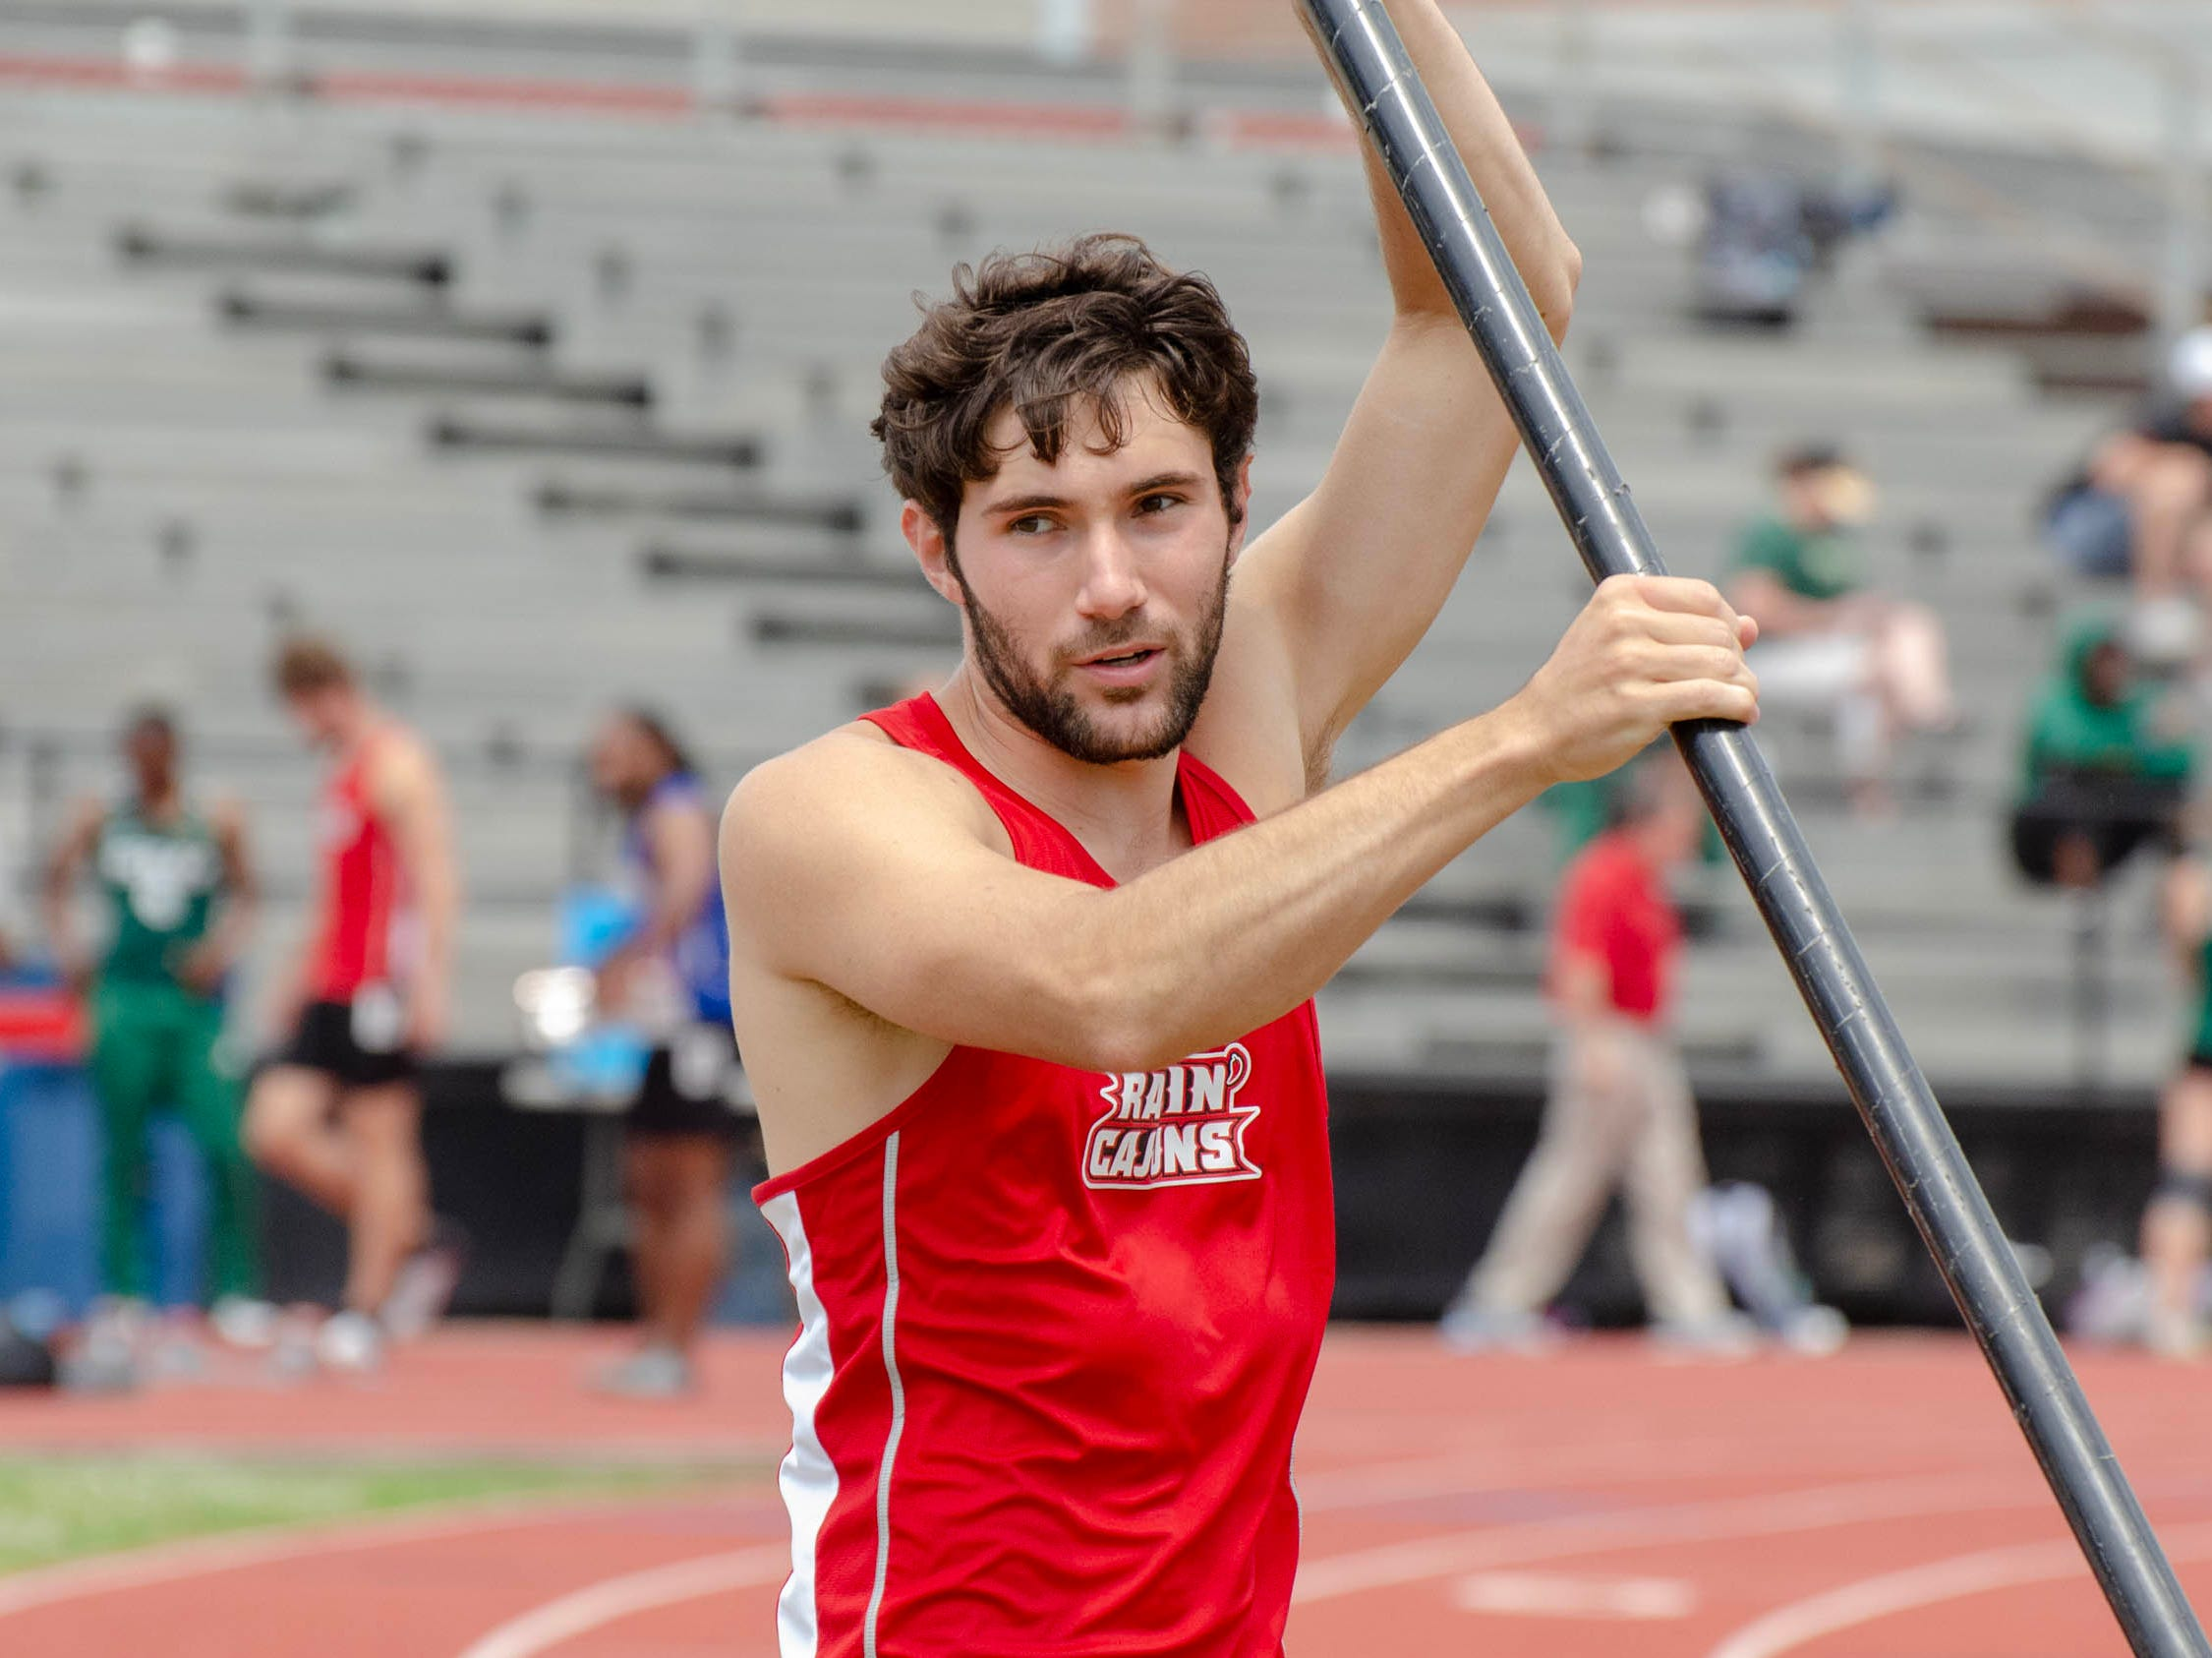 Kyle Baudoin competing in pole vault. University of Louisiana at Lafayette host 2019 Cole-Lancon Conference Showdown.